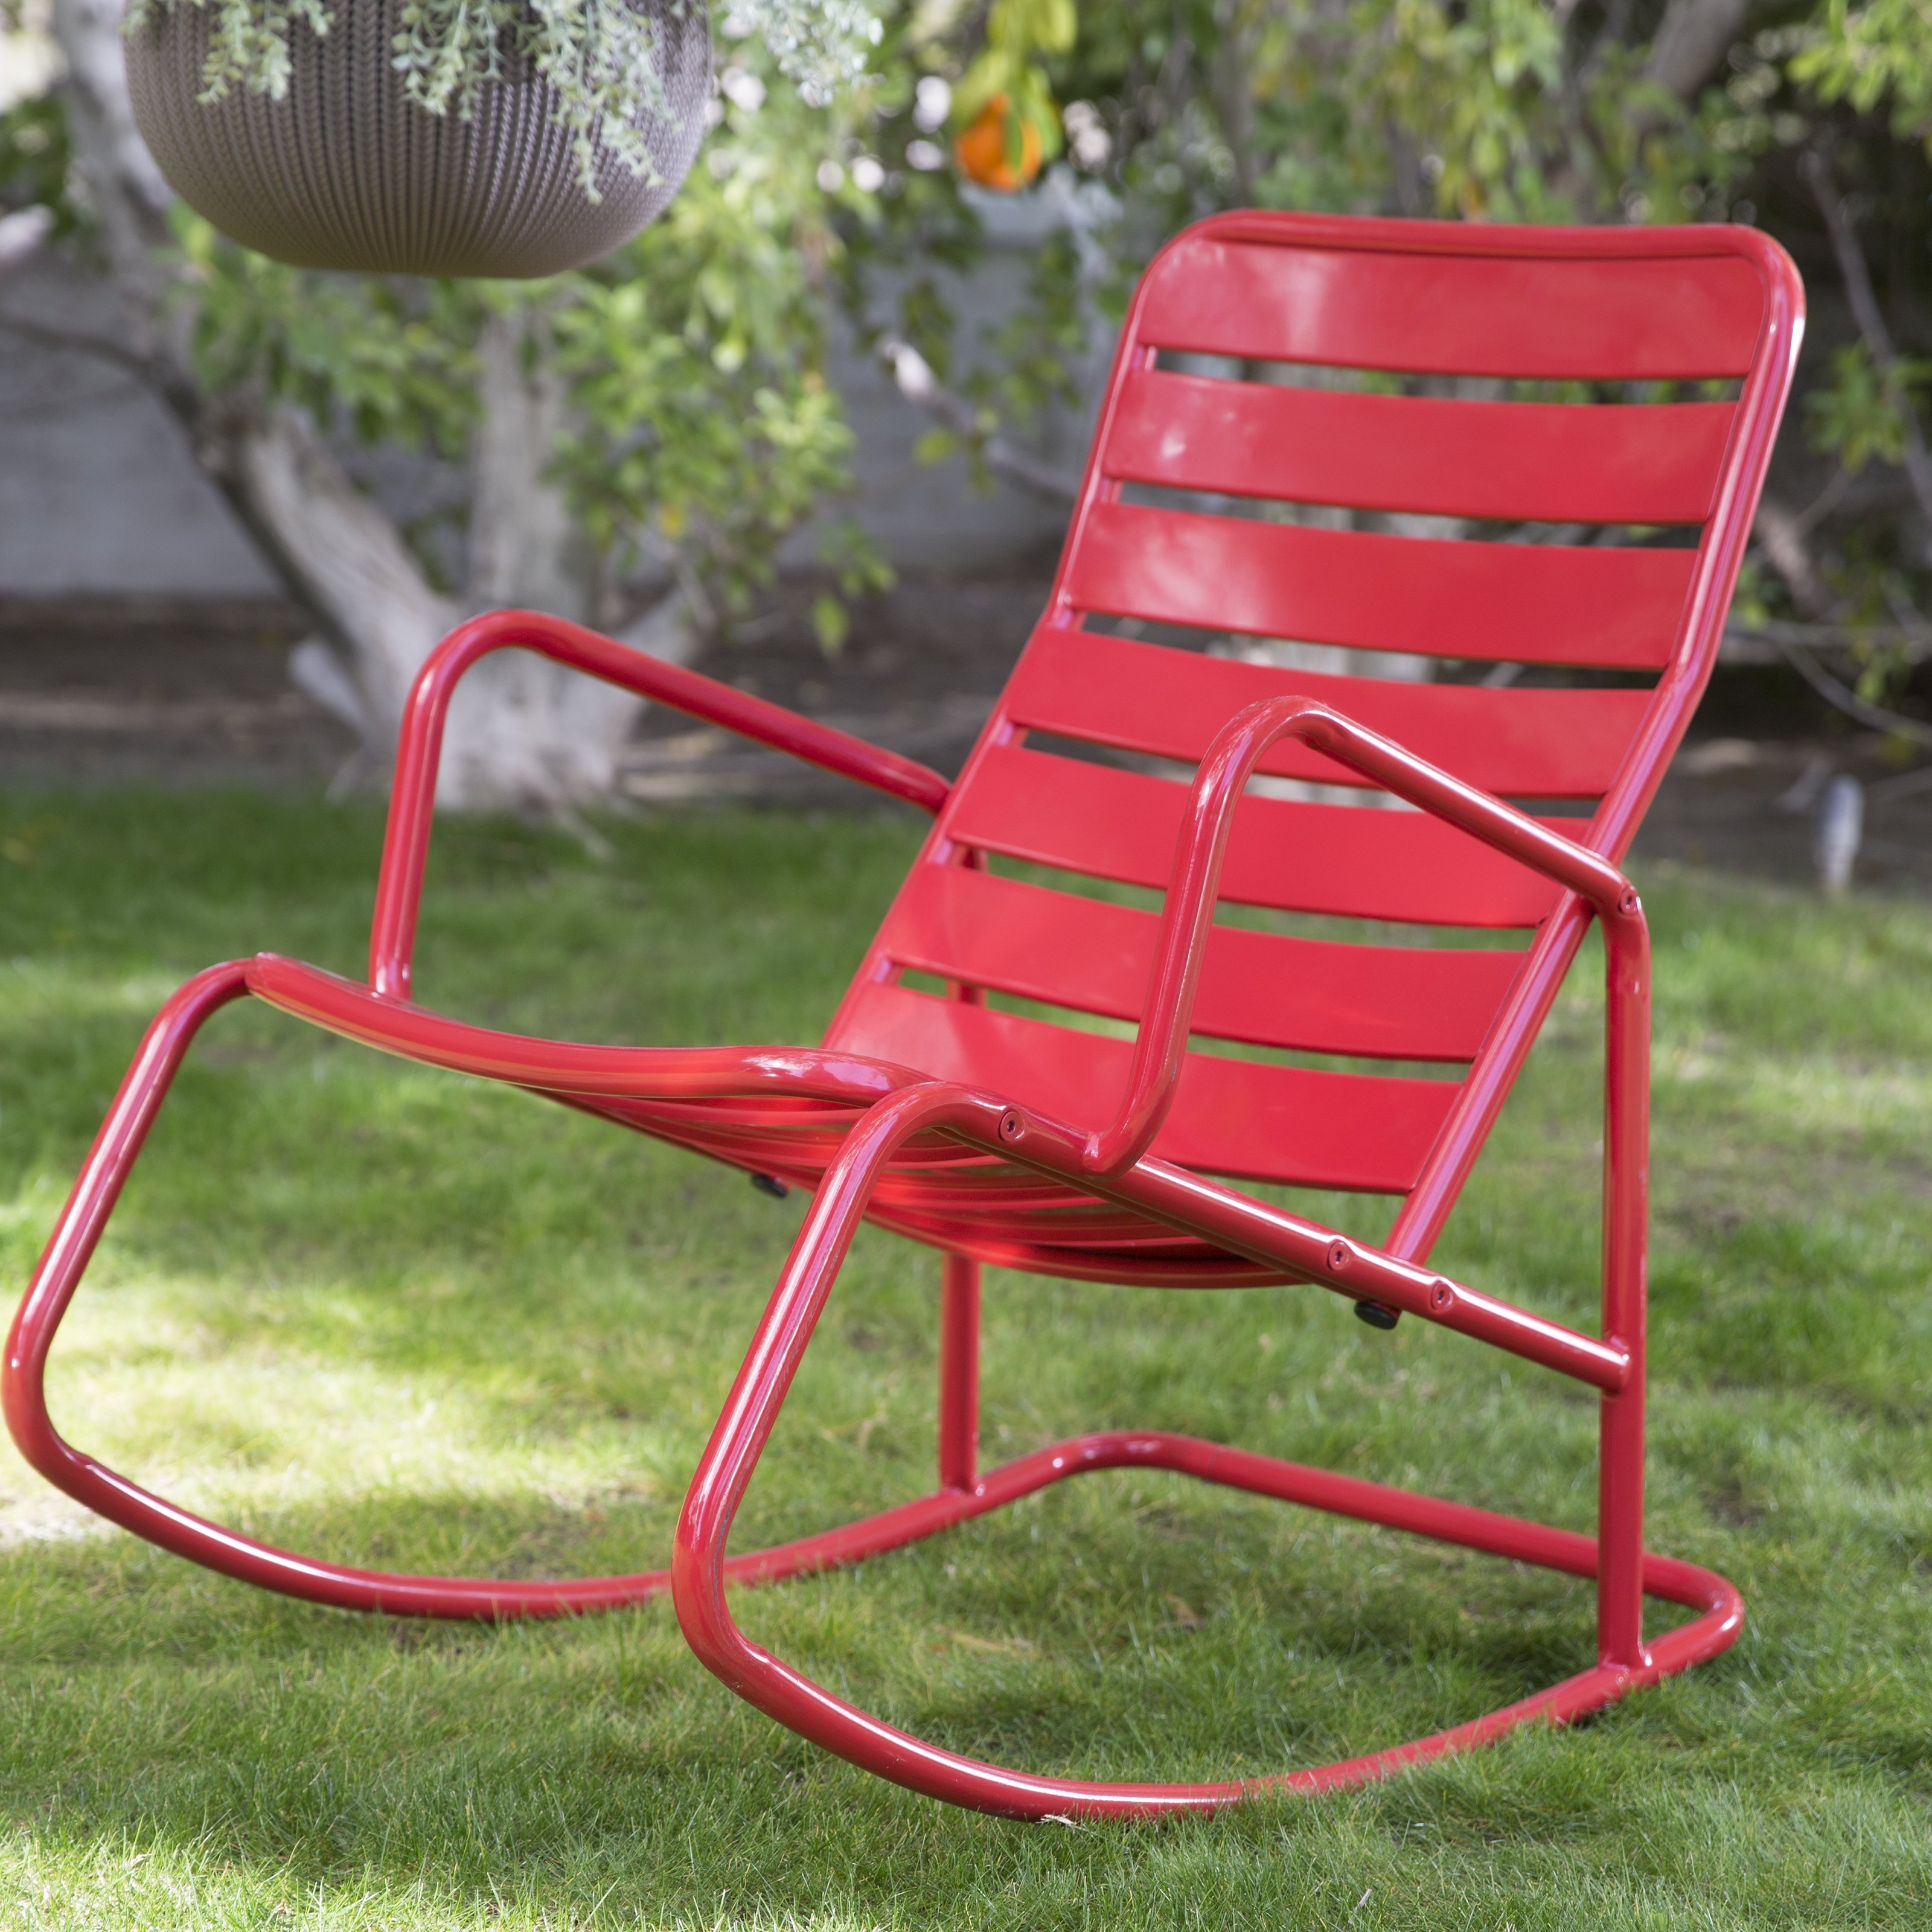 Trendy Belham Living Adley Outdoor Metal Slat Rocking Chair – Walmart Inside Iron Rocking Patio Chairs (View 14 of 15)